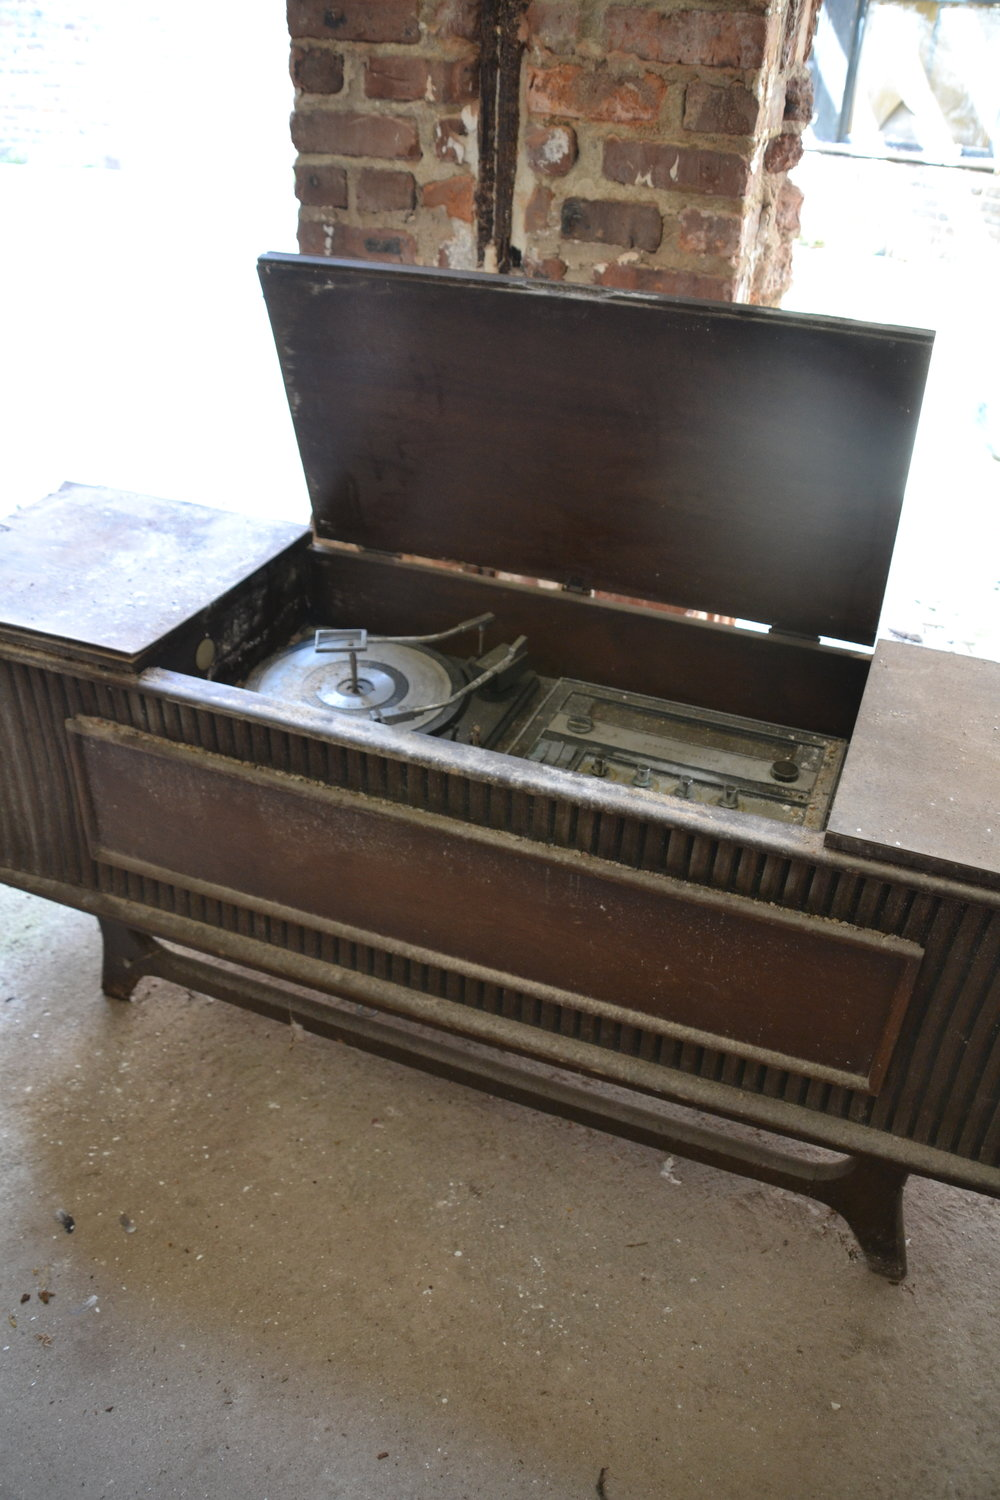 A stereo console, perhaps from the days when the theatre functioned as a rock music venue.